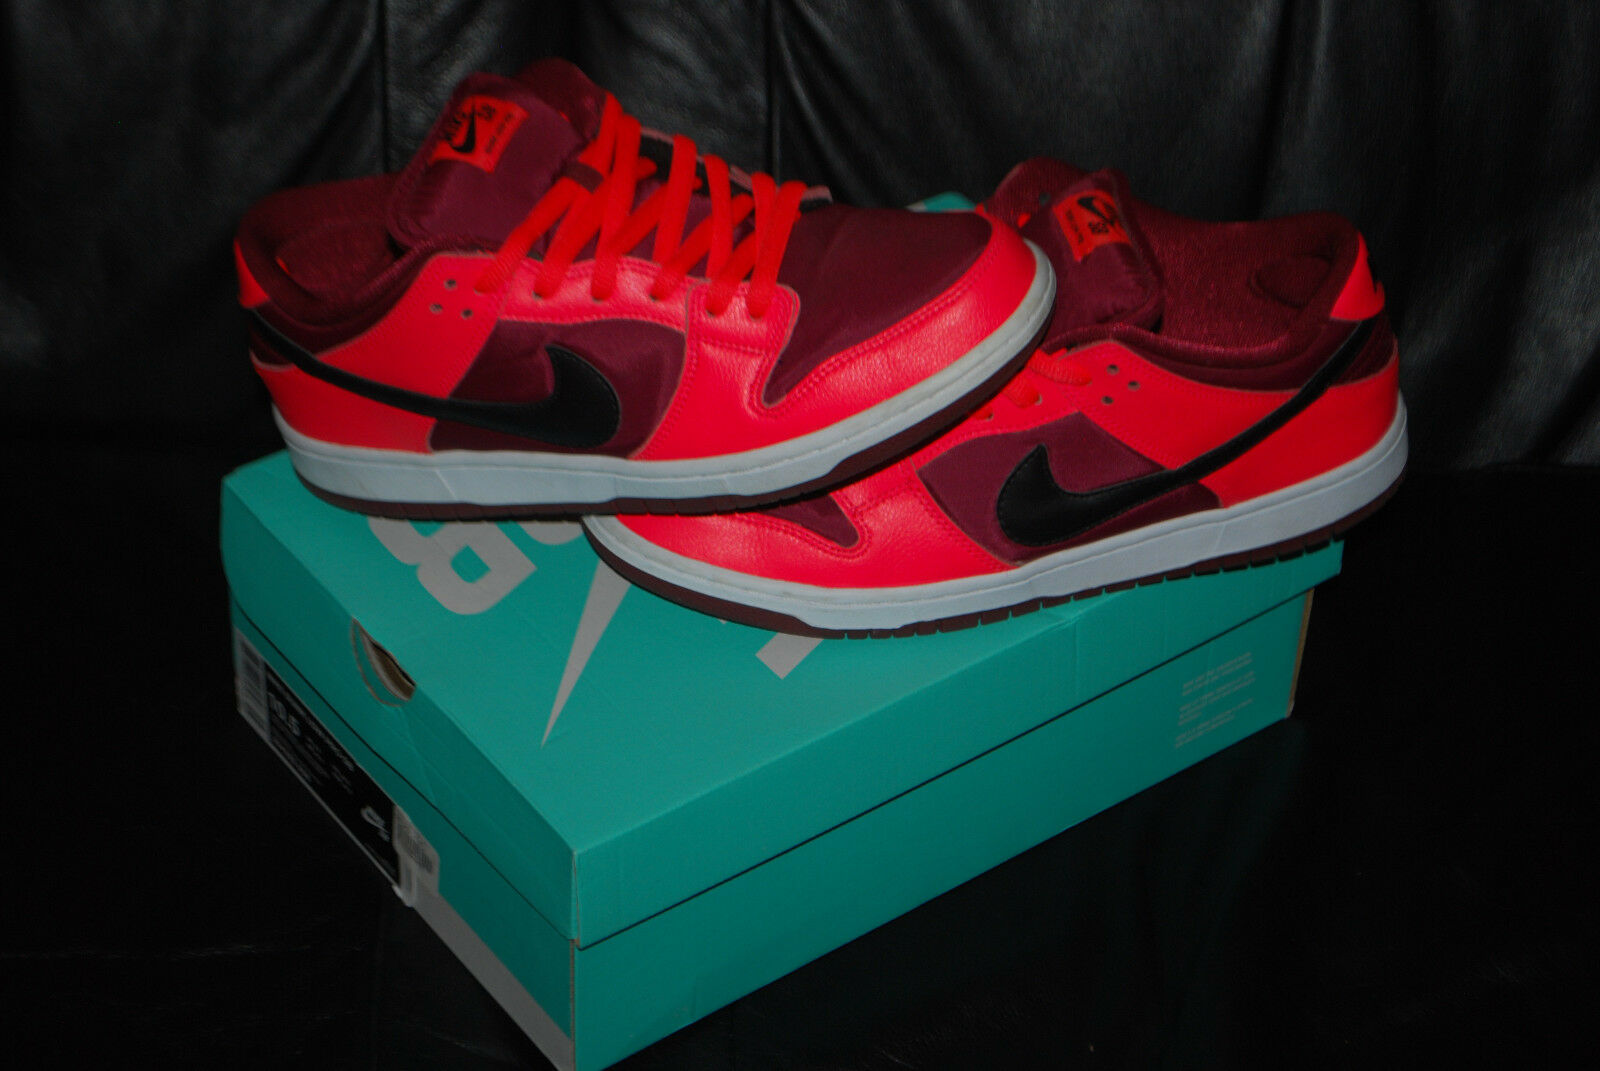 männer - nike sb dunk low team pro laser - / team low red shoes (10,5) 304292 ‑ 606 5acf24